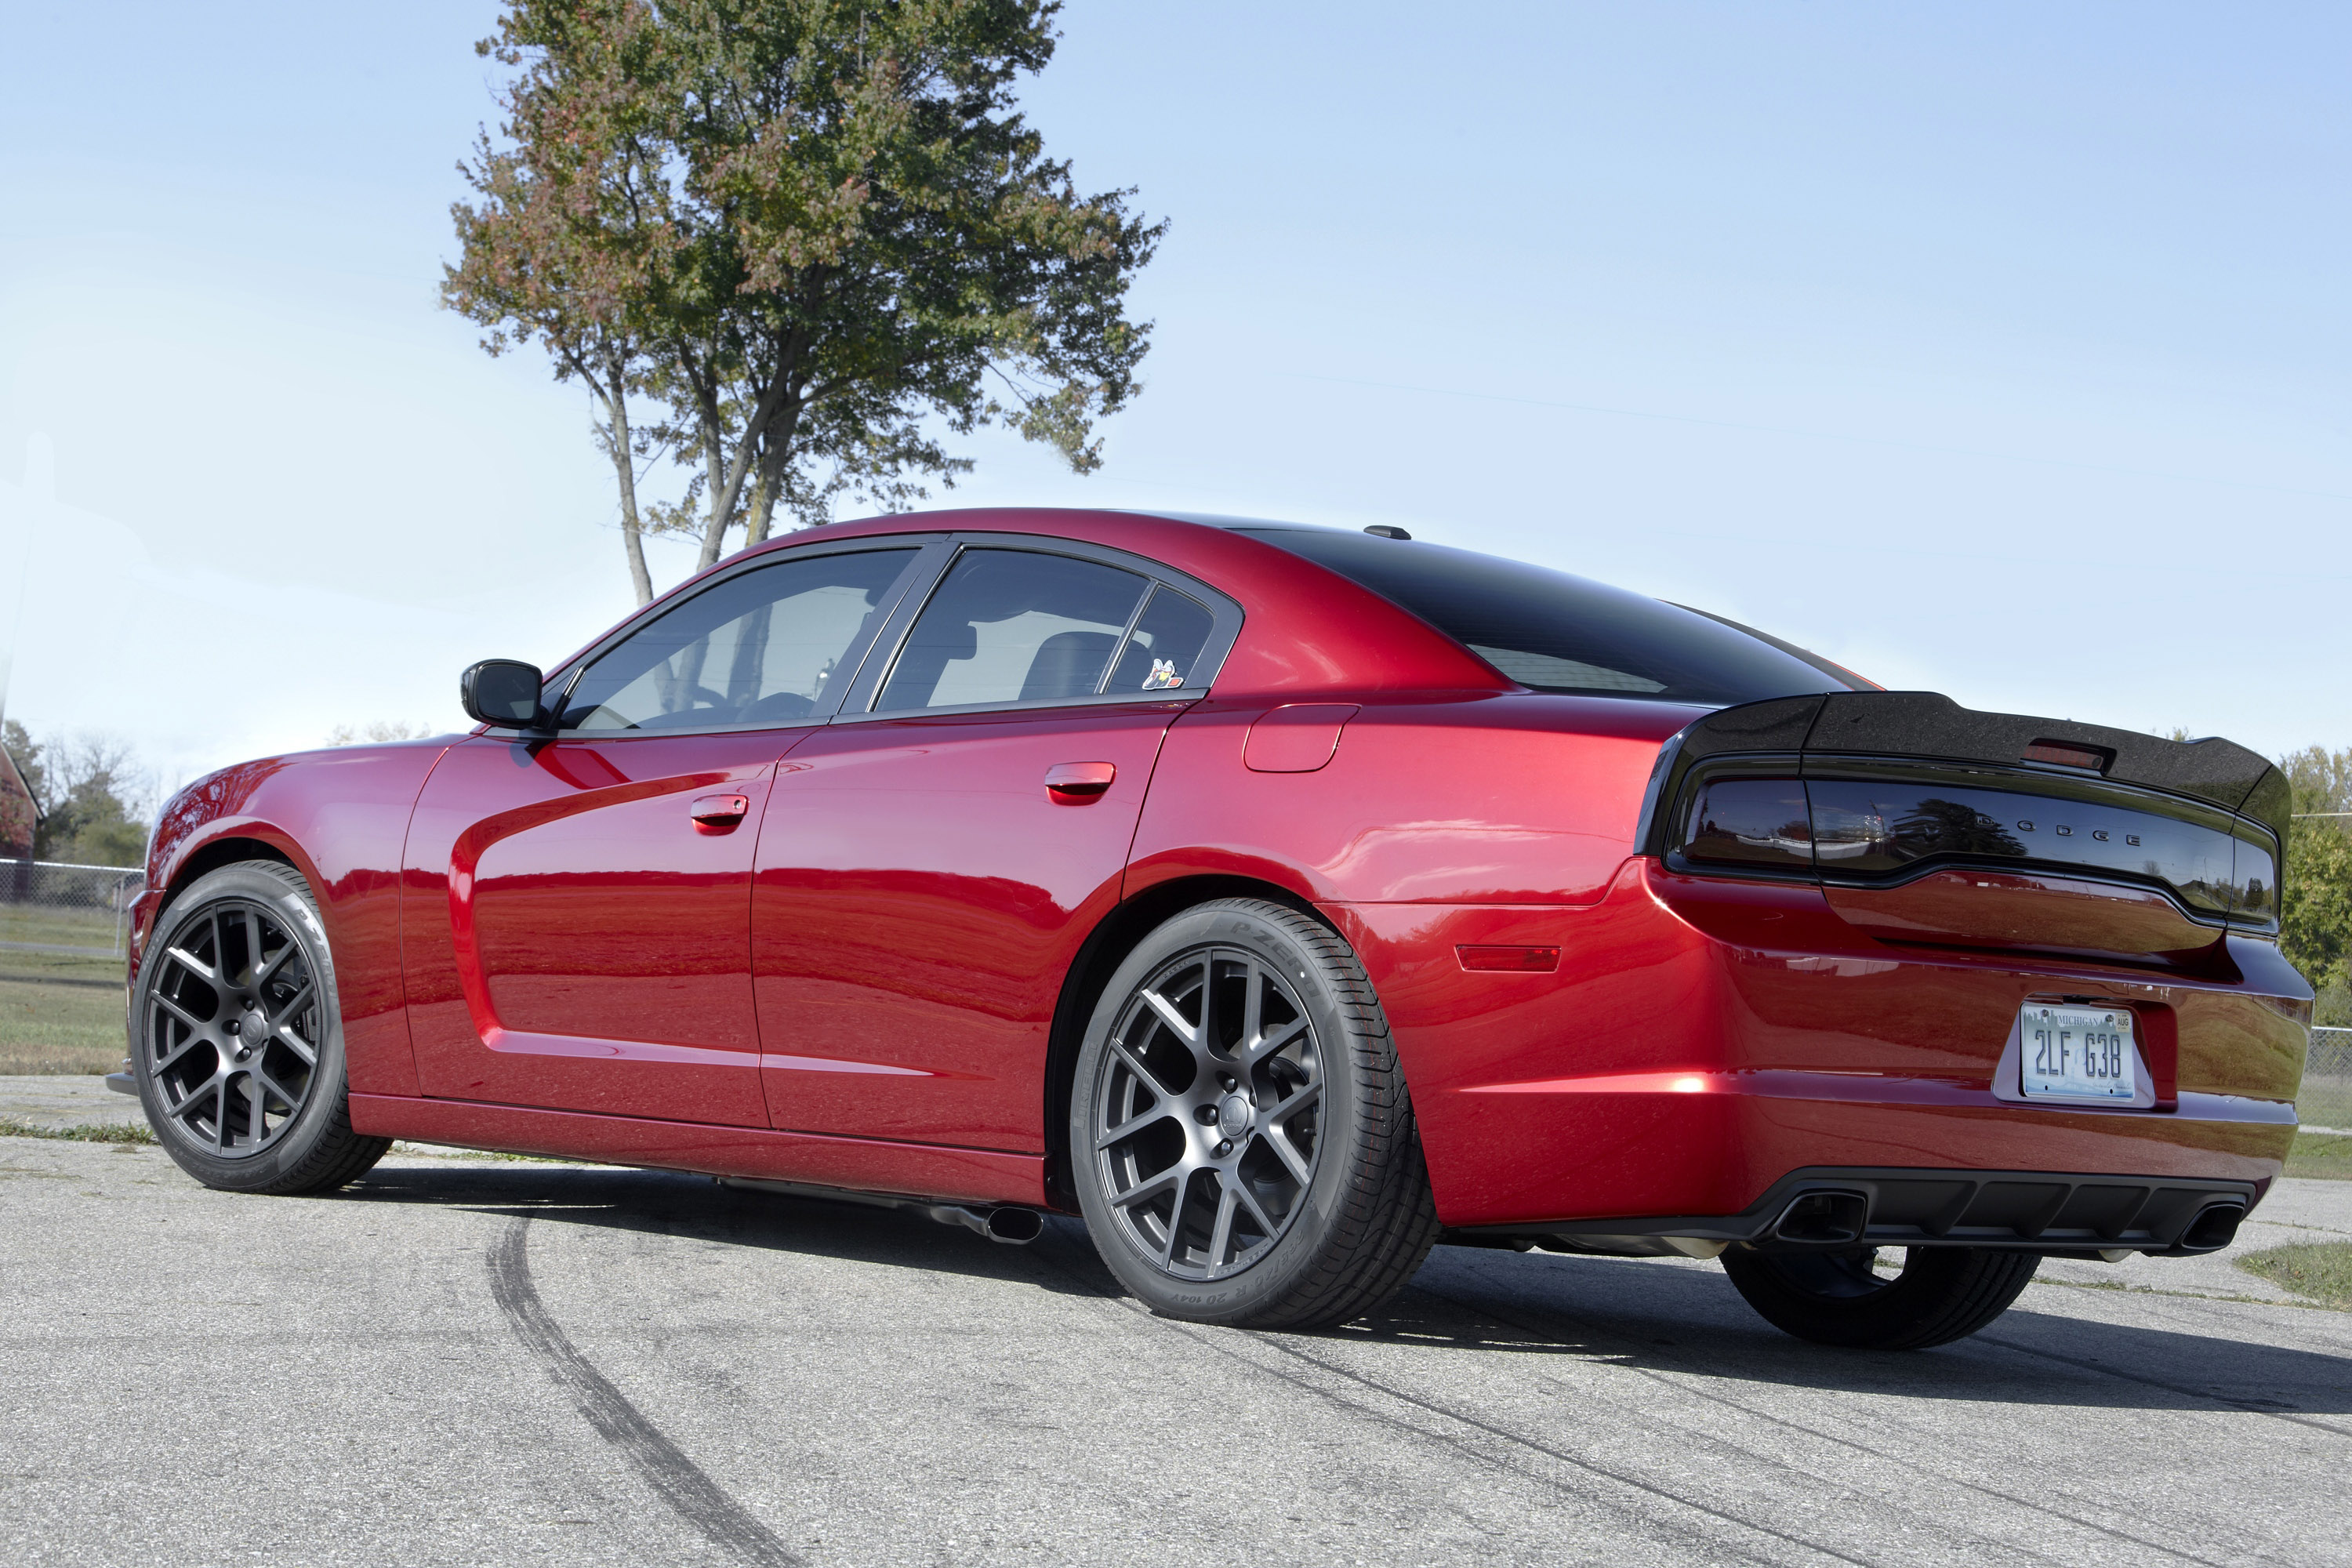 2014 dodge charger rt with scat package 3 - Dodge Charger 2014 Red